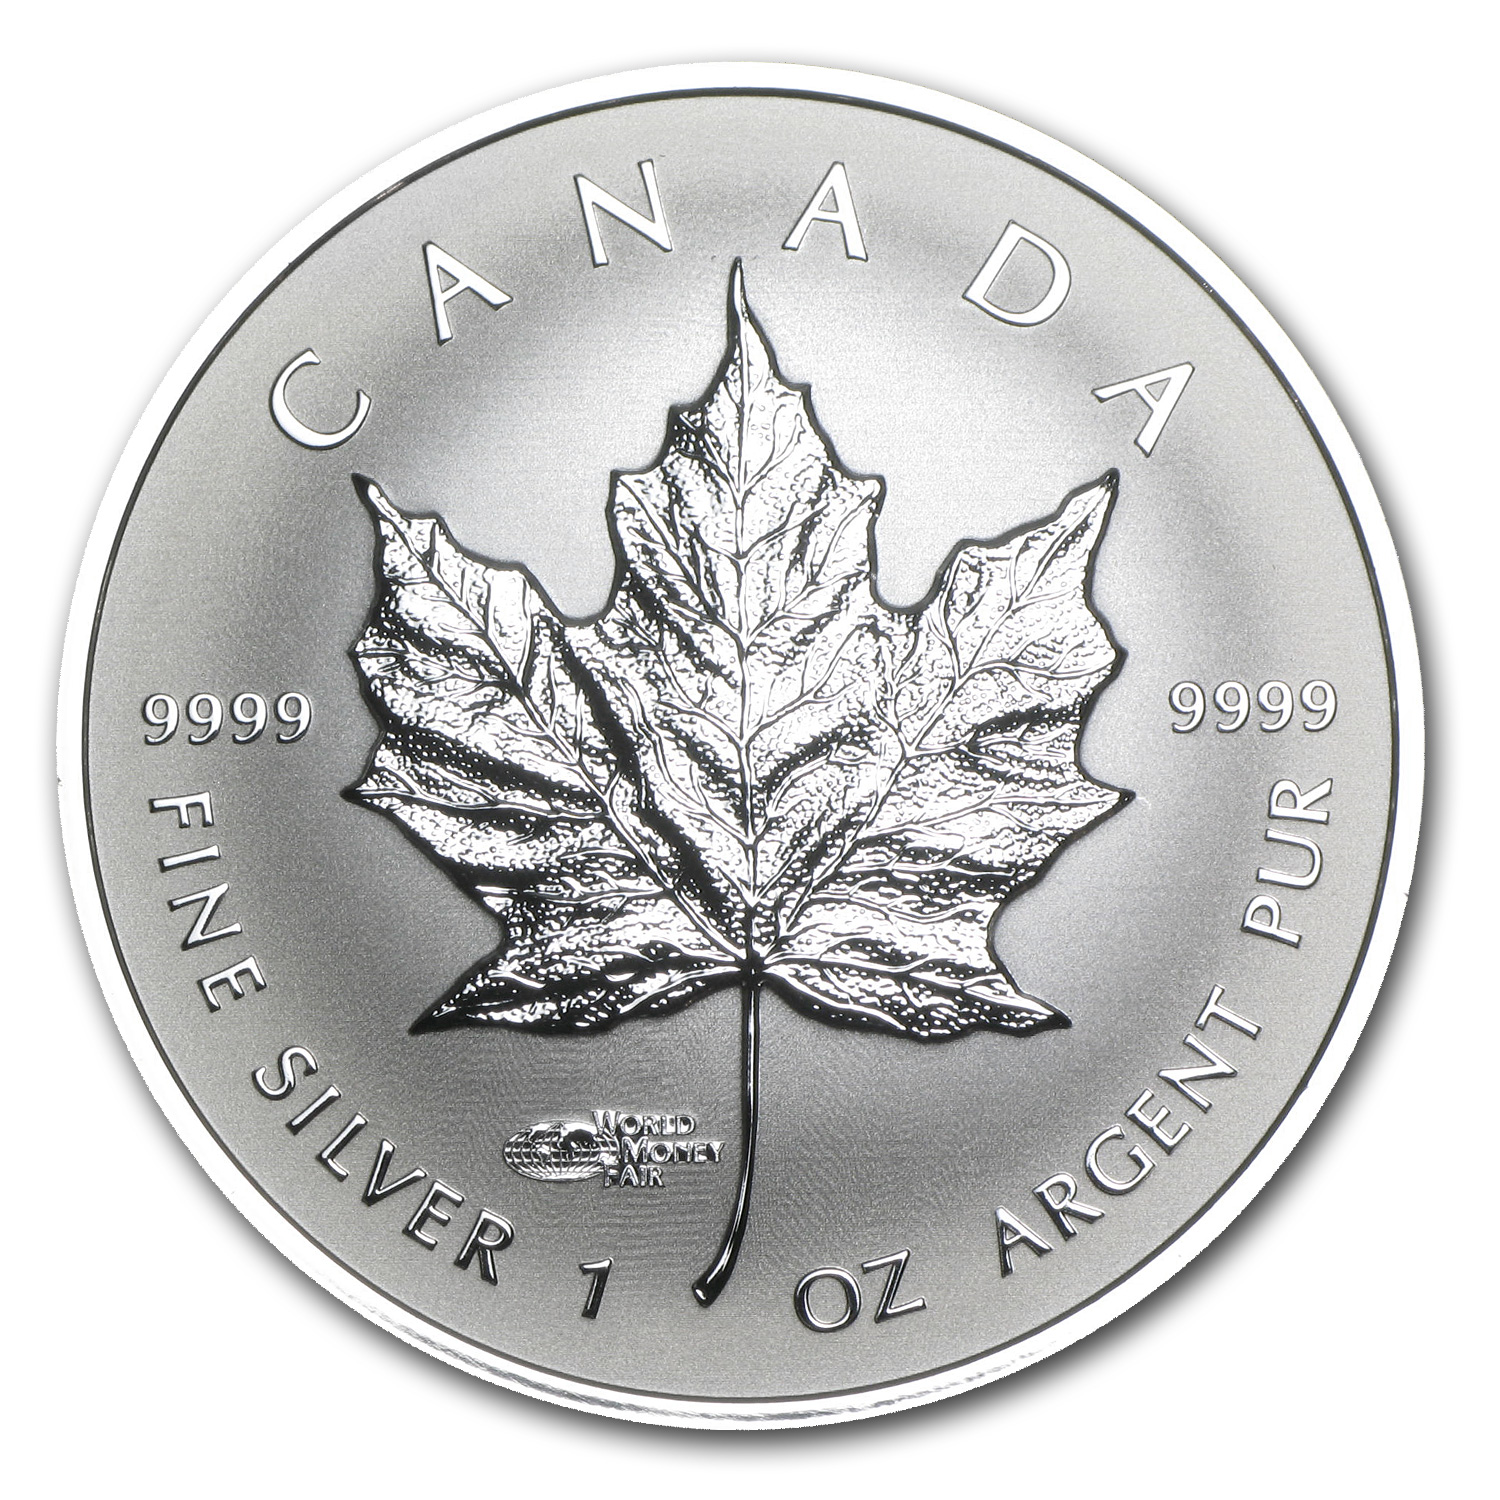 2014 Canada 1 oz Silver Reverse Prf Maple Leaf WMF Privy Mark